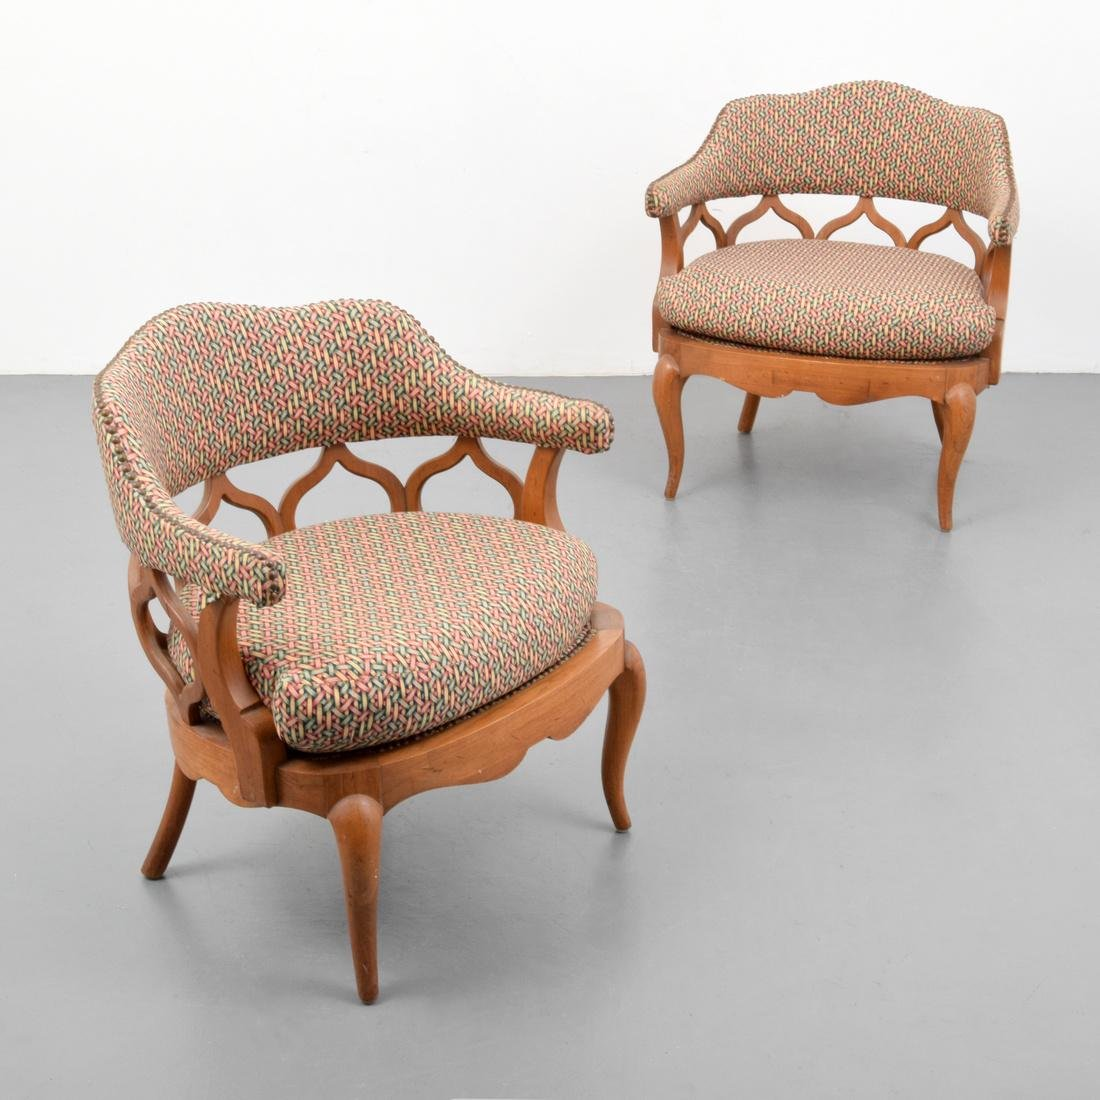 Pair of Lounge Chairs, Manner of William Haines